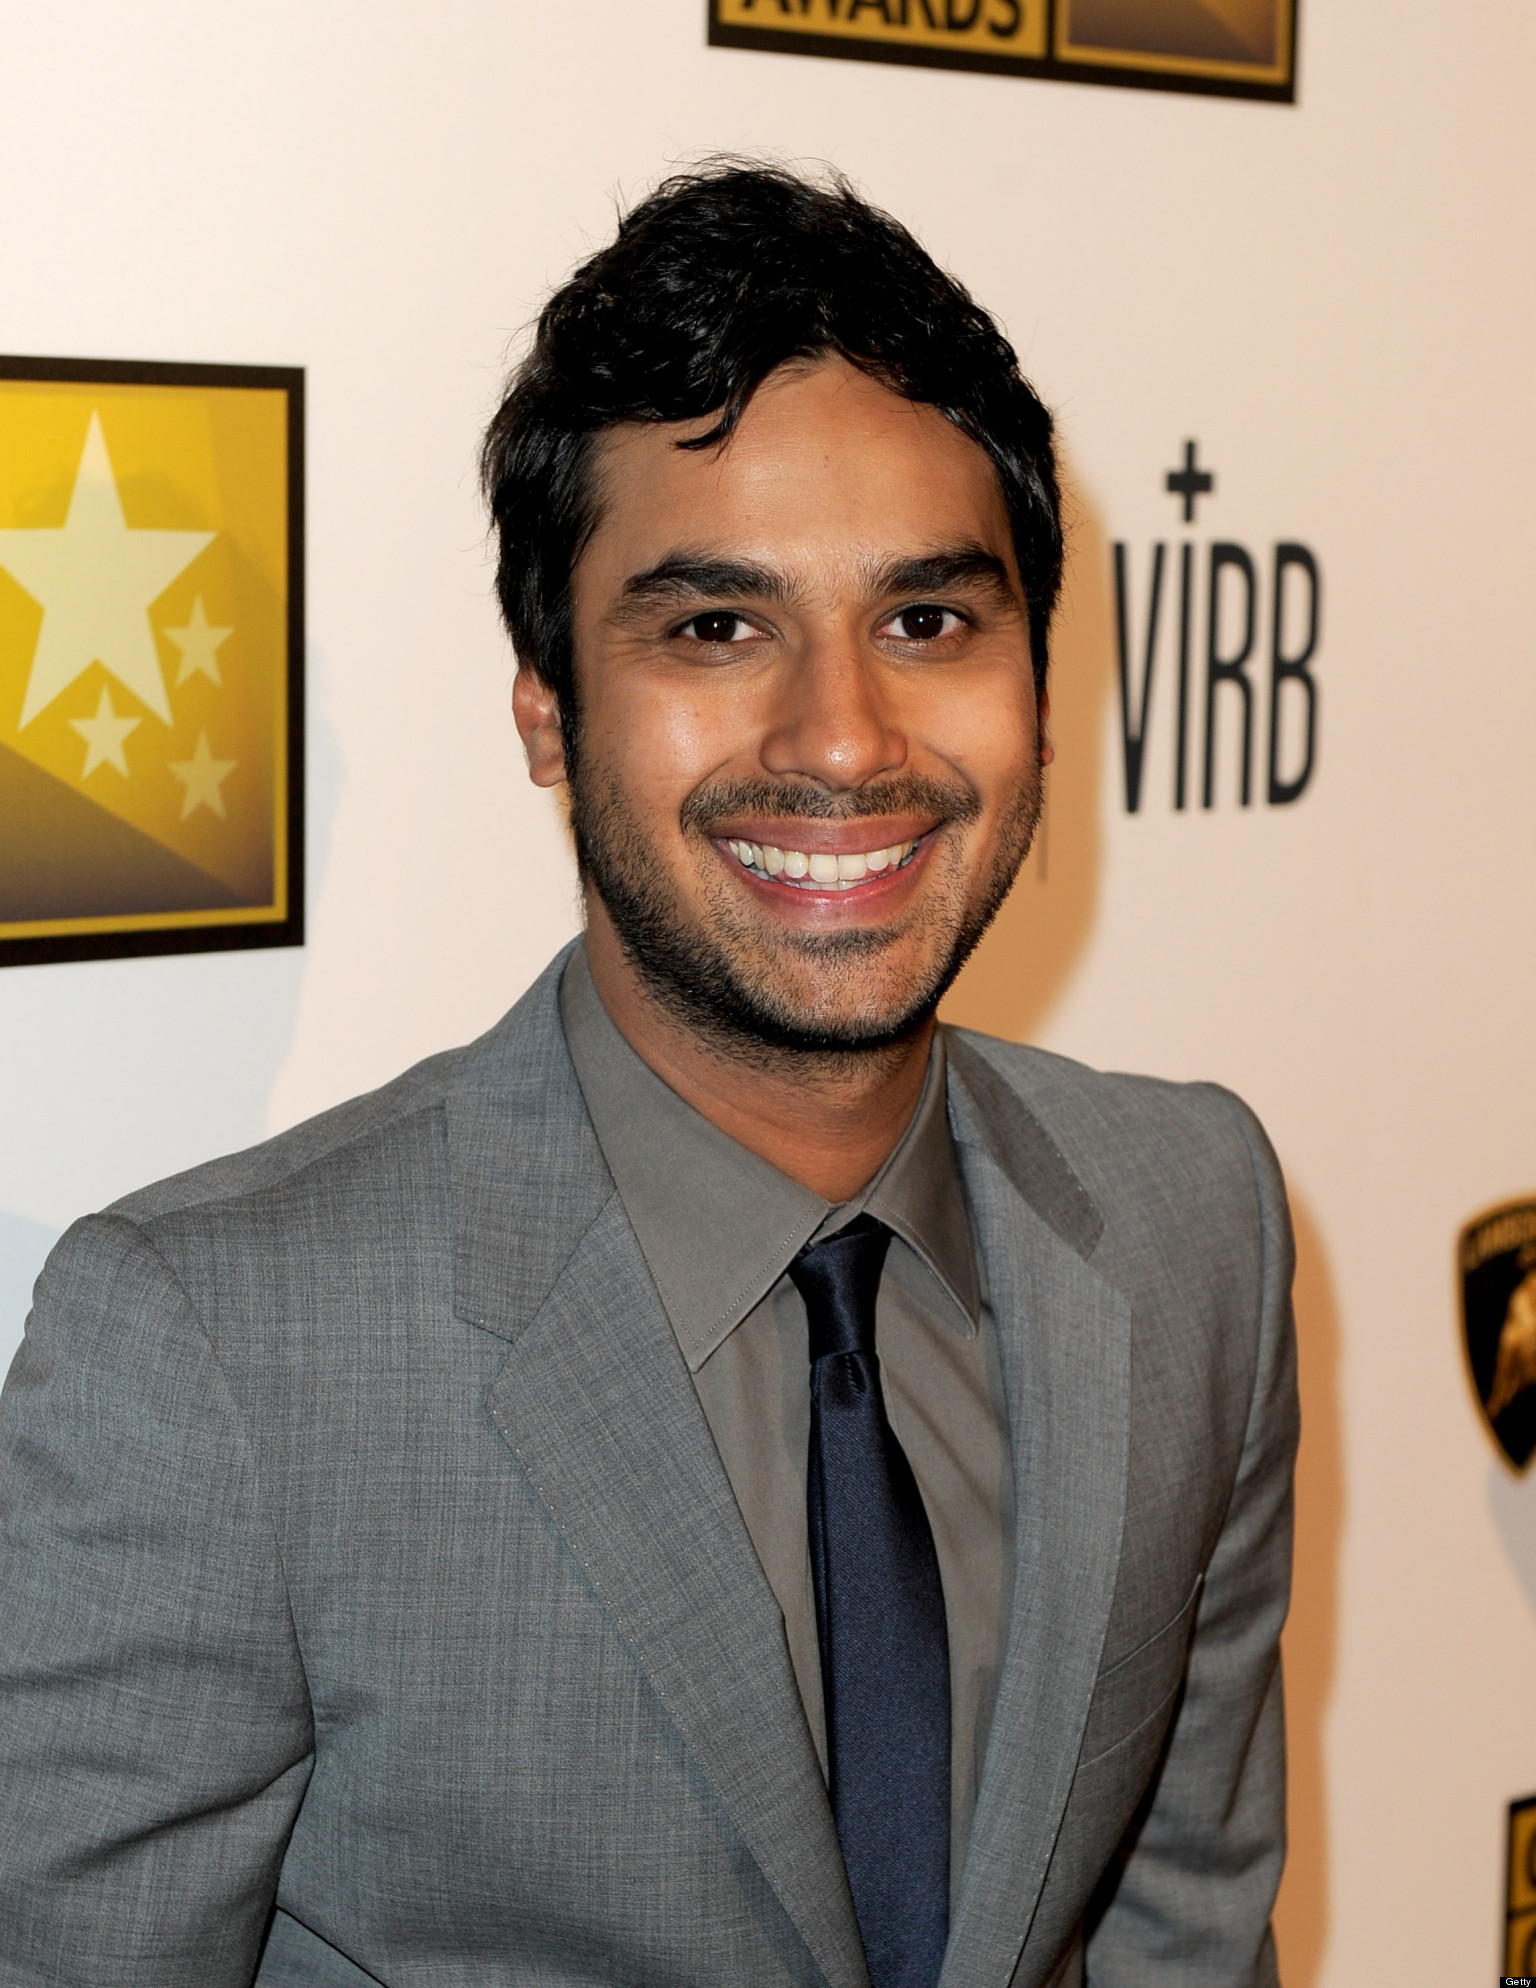 Kunal Nayyar earned a  million dollar salary, leaving the net worth at 5 million in 2017